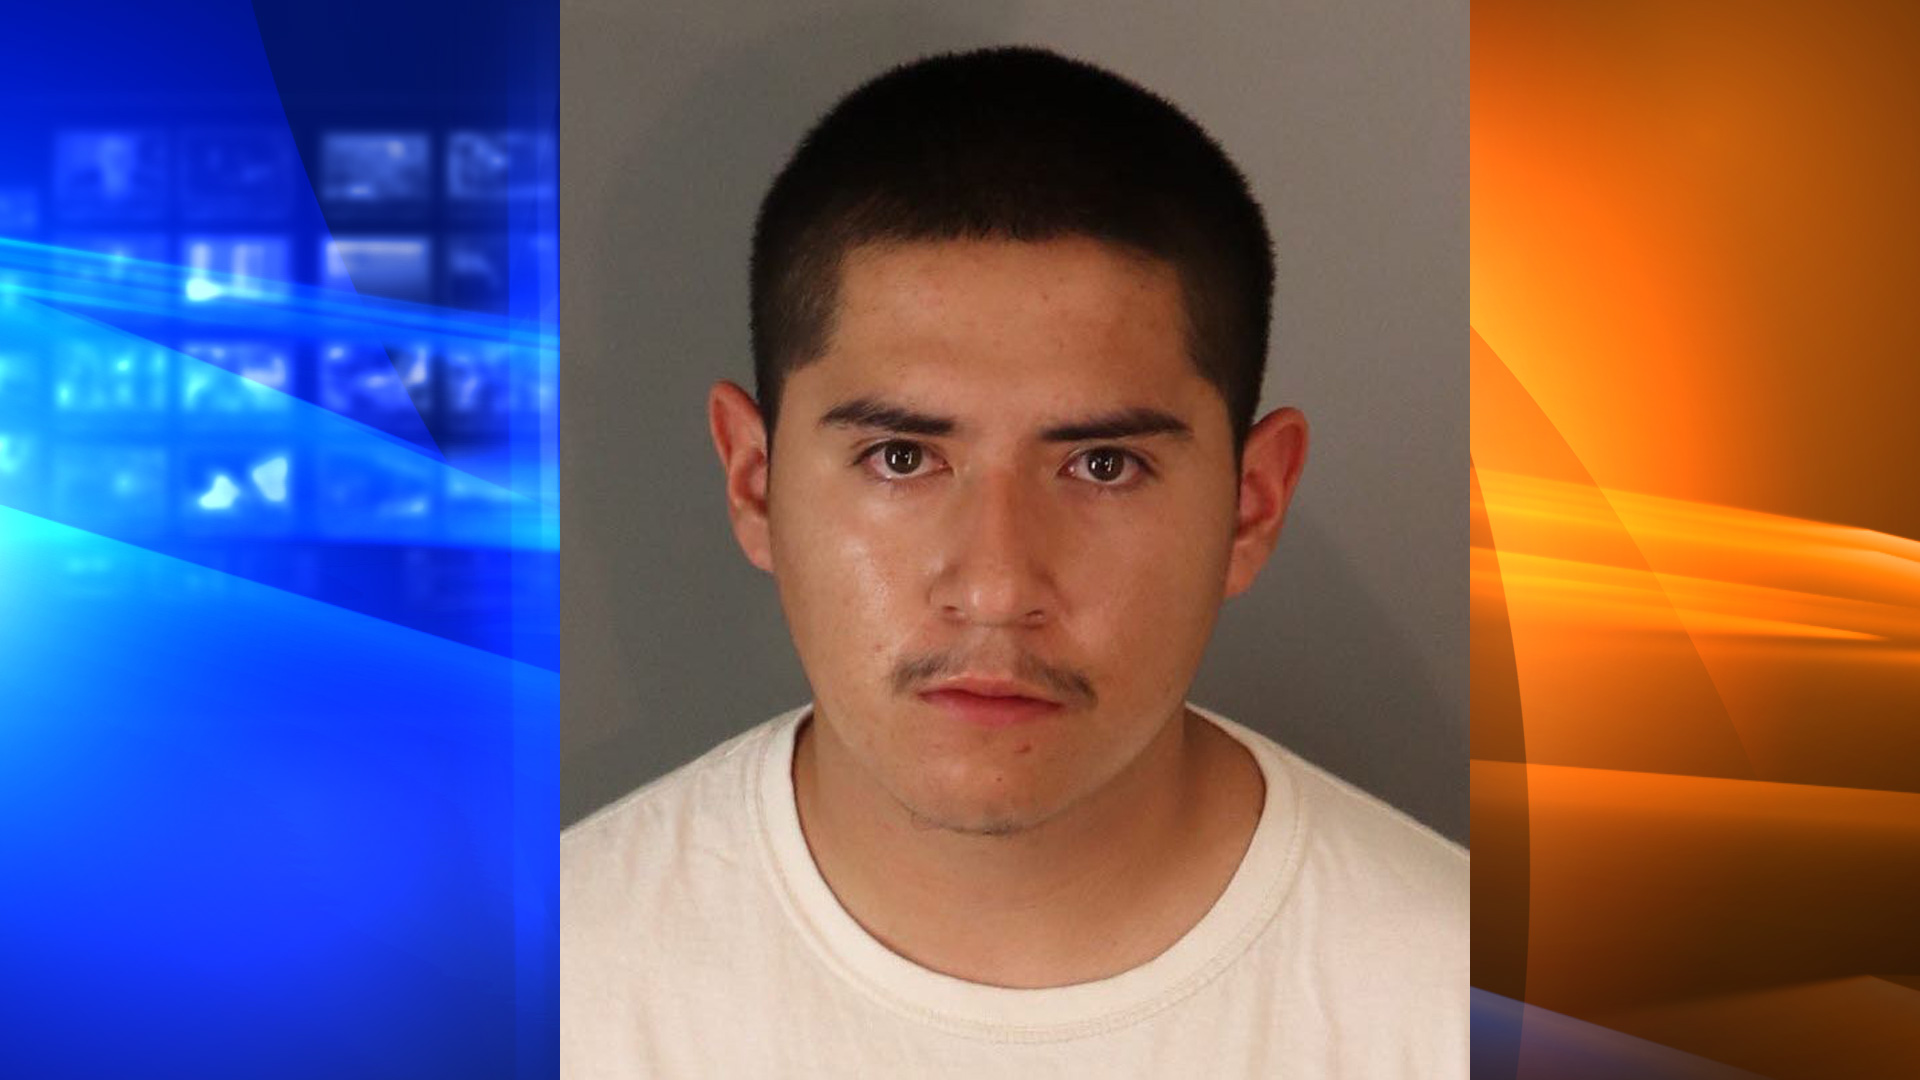 Fredi Lucero, 19, is seen in a photo released by the Riverside Police Department on Aug. 3, 2021.